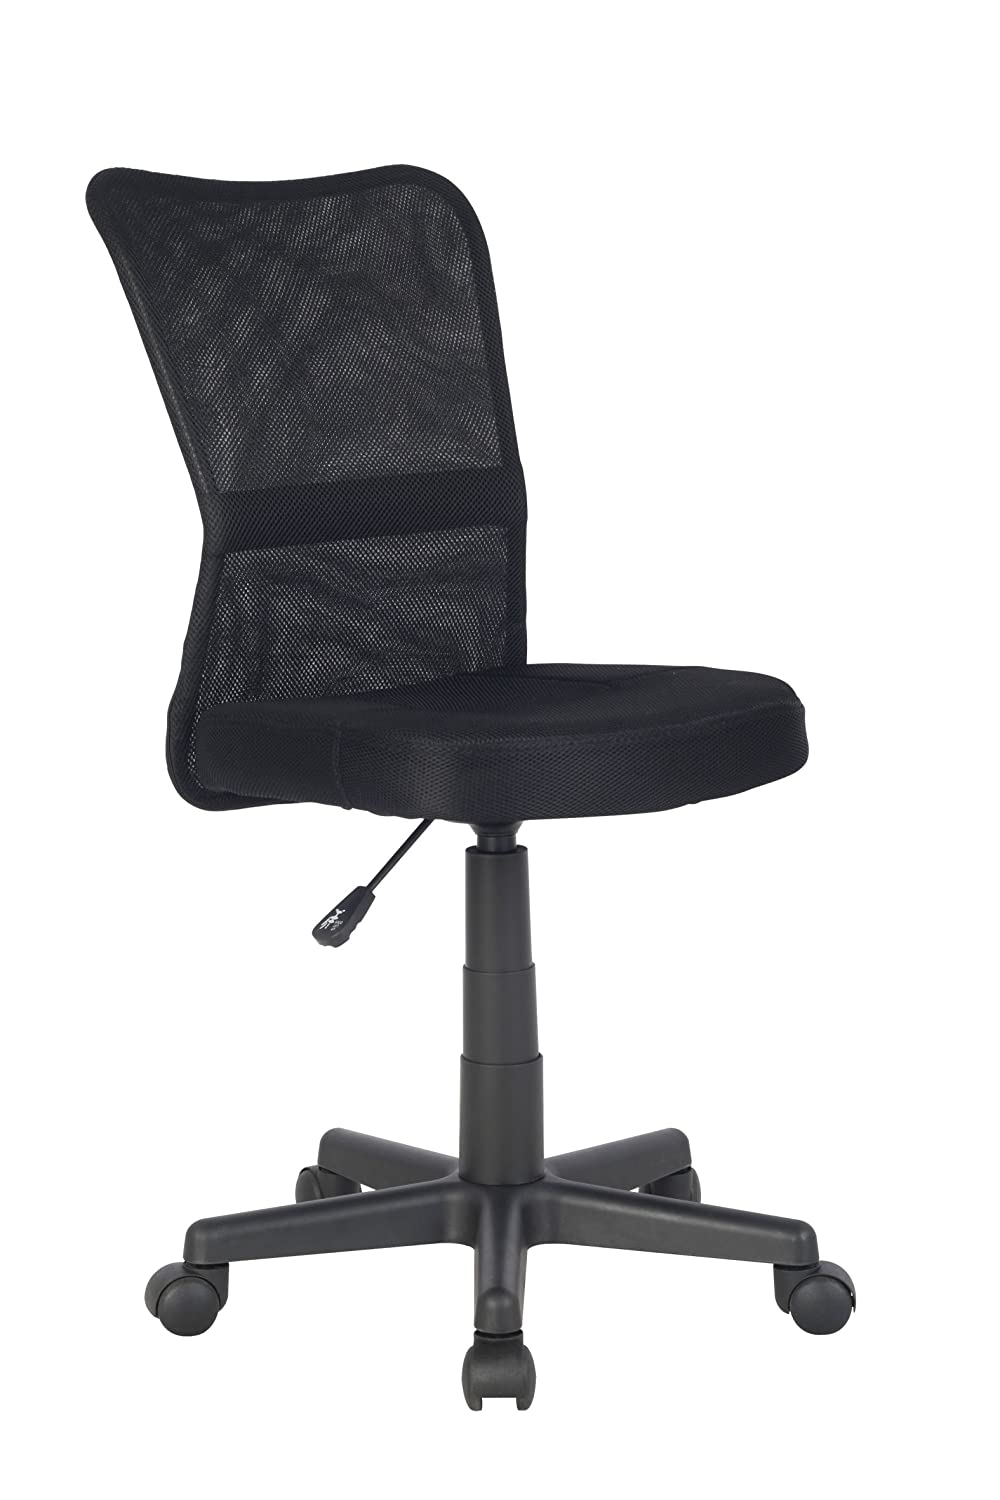 Best office chair 2016 - Office Chair Black